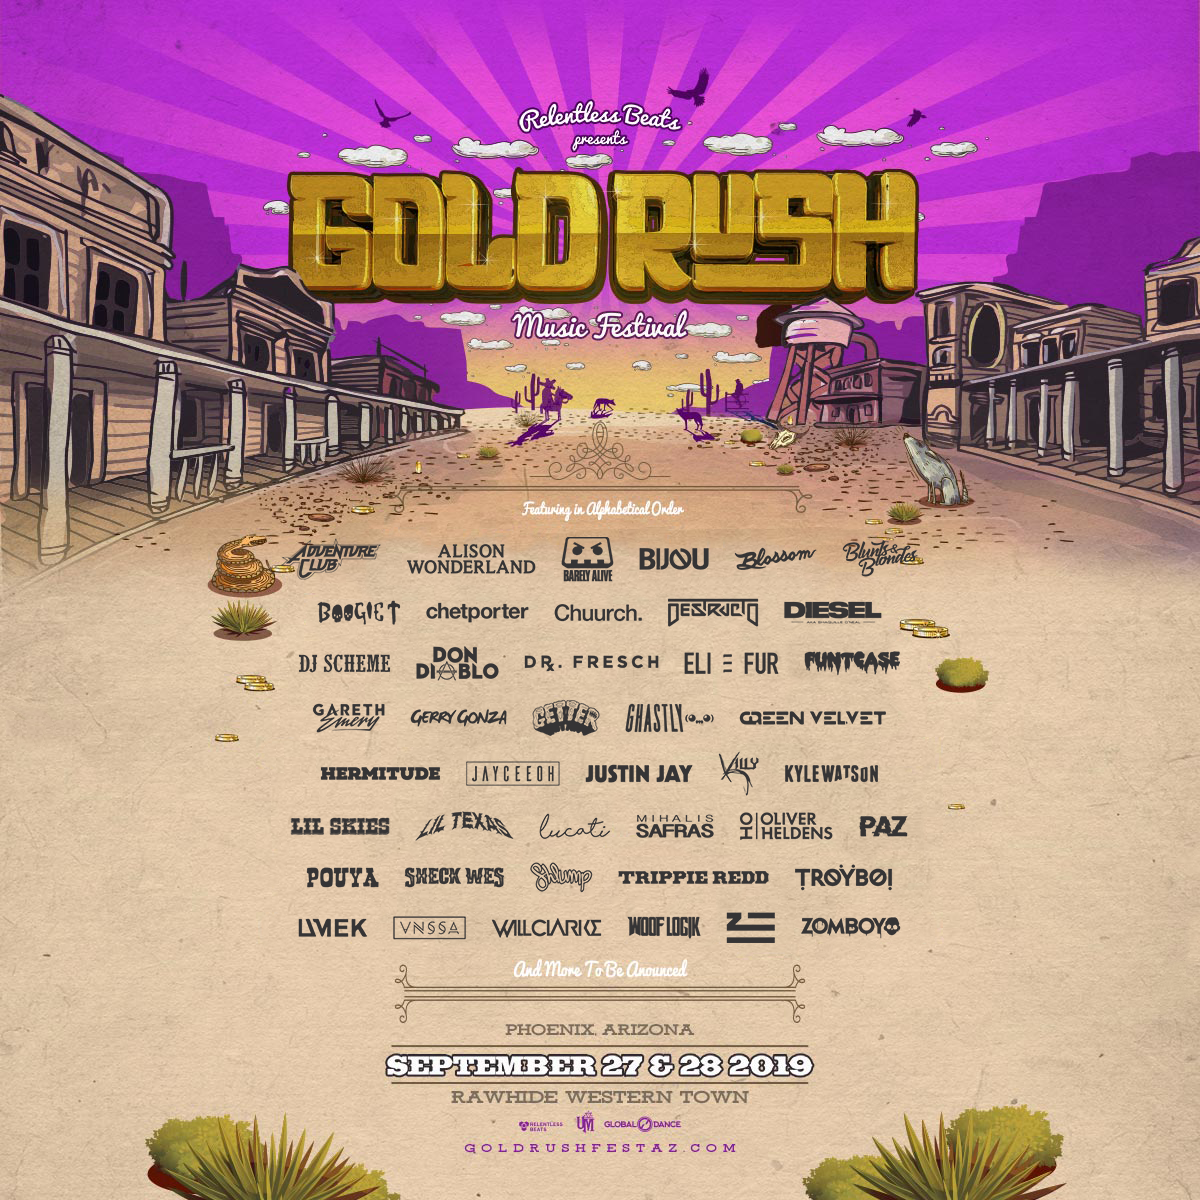 Goldrush 2019 Chandler Tickets - 09/27/19 - Rawhide Western